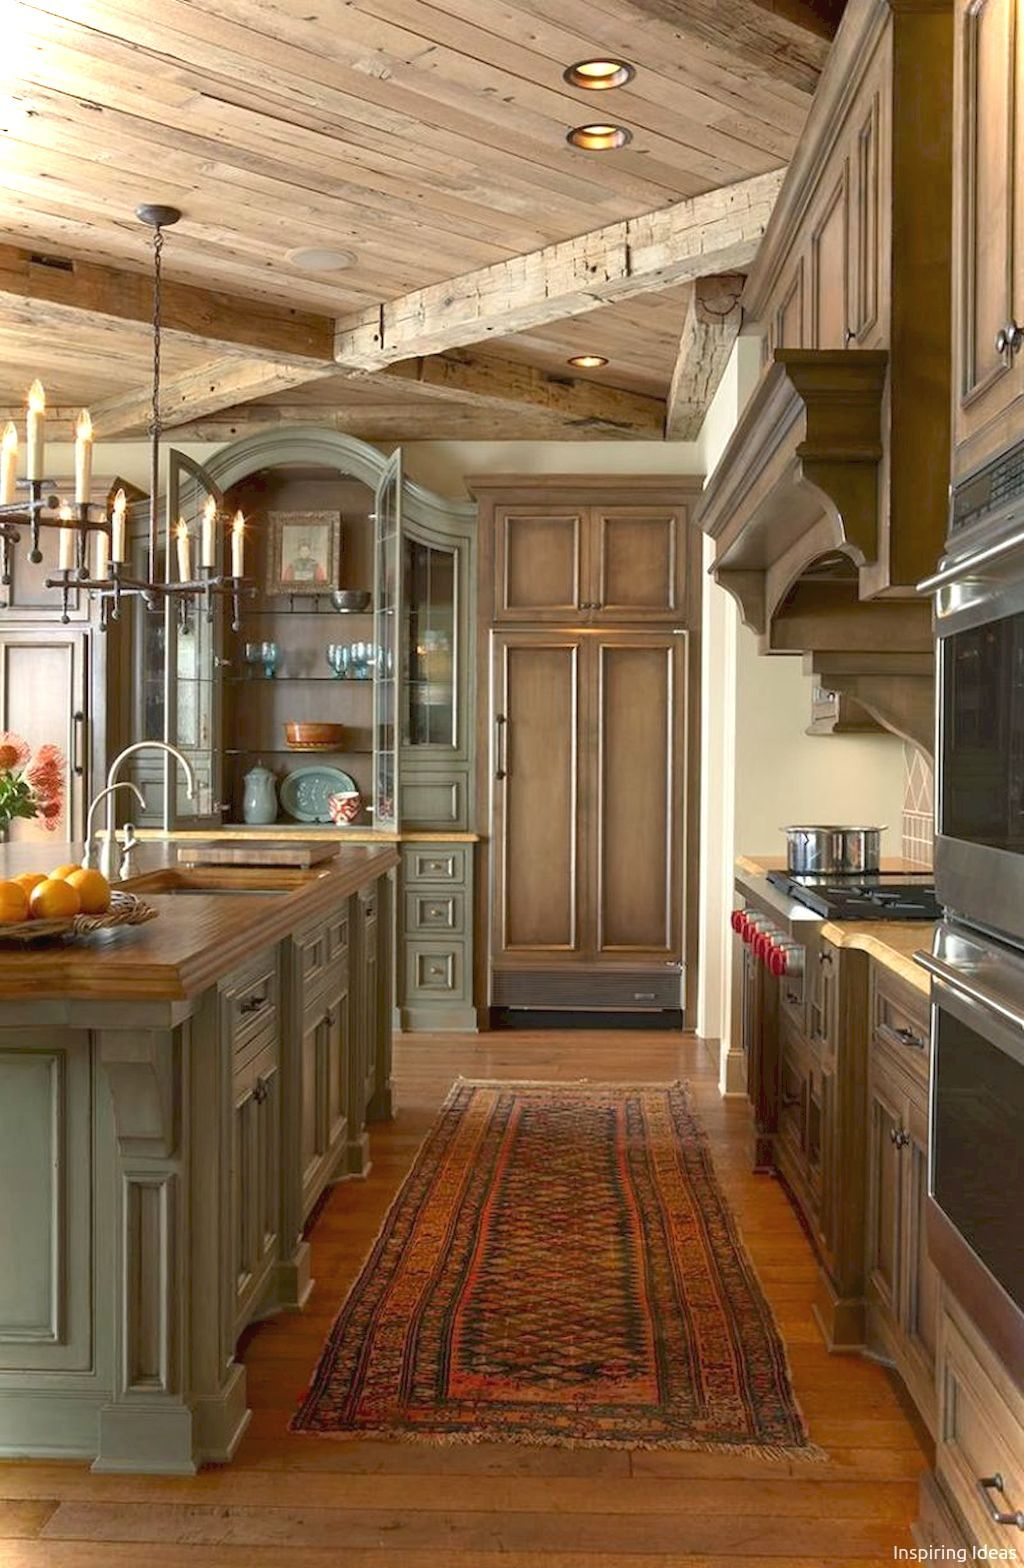 50 Rustic Cottage Kitchen Cabinets Ideas Decorisart Rustic Kitchen Design Country Kitchen Designs Rustic House